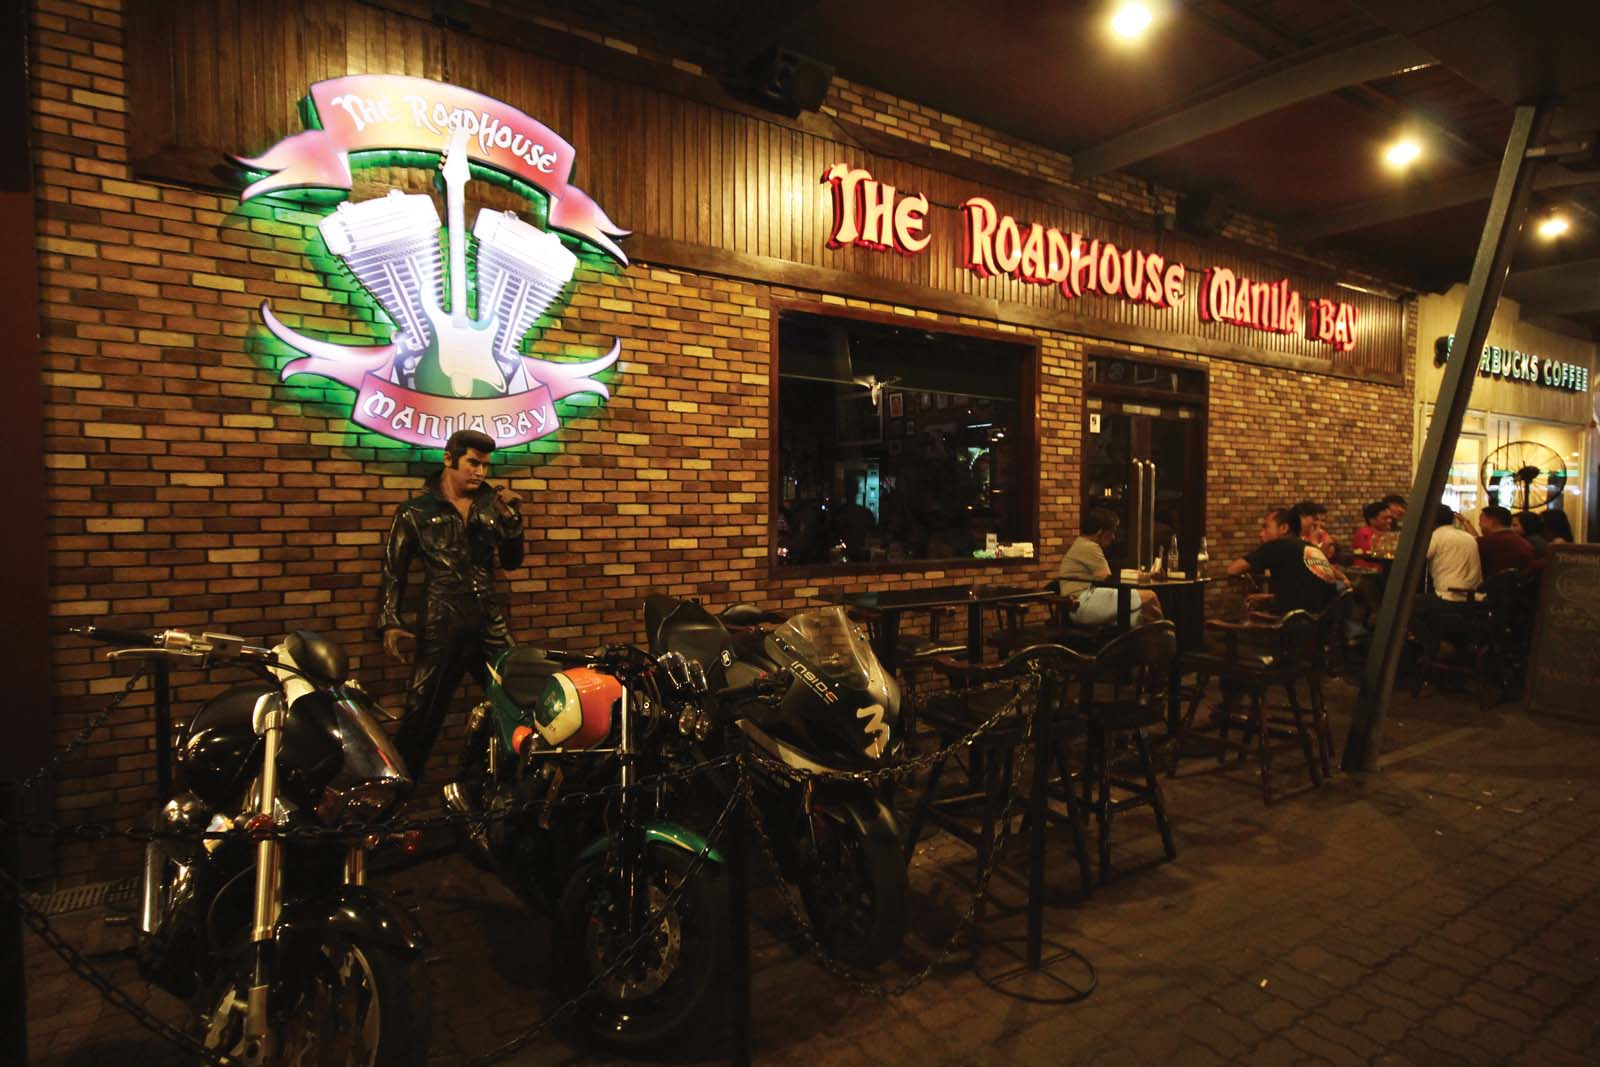 The Roadhouse Manila Bay and 70's Bistro